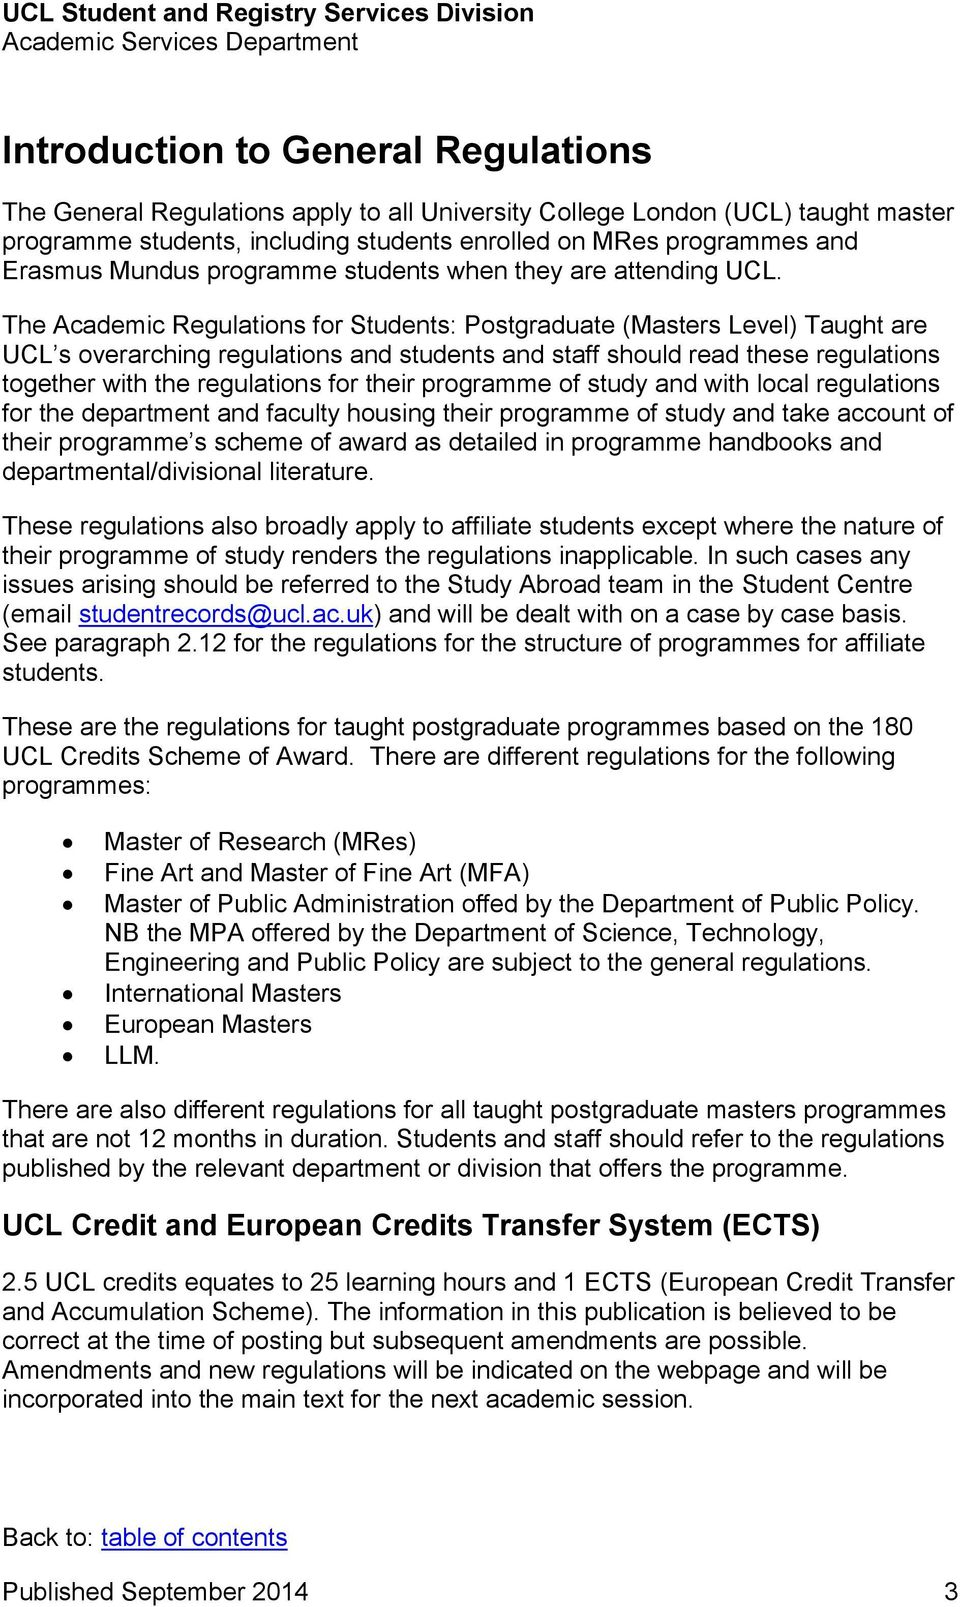 The Academic Regulations for Students: Postgraduate (Masters Level) Taught are UCL s overarching regulations and students and staff should read these regulations together with the regulations for